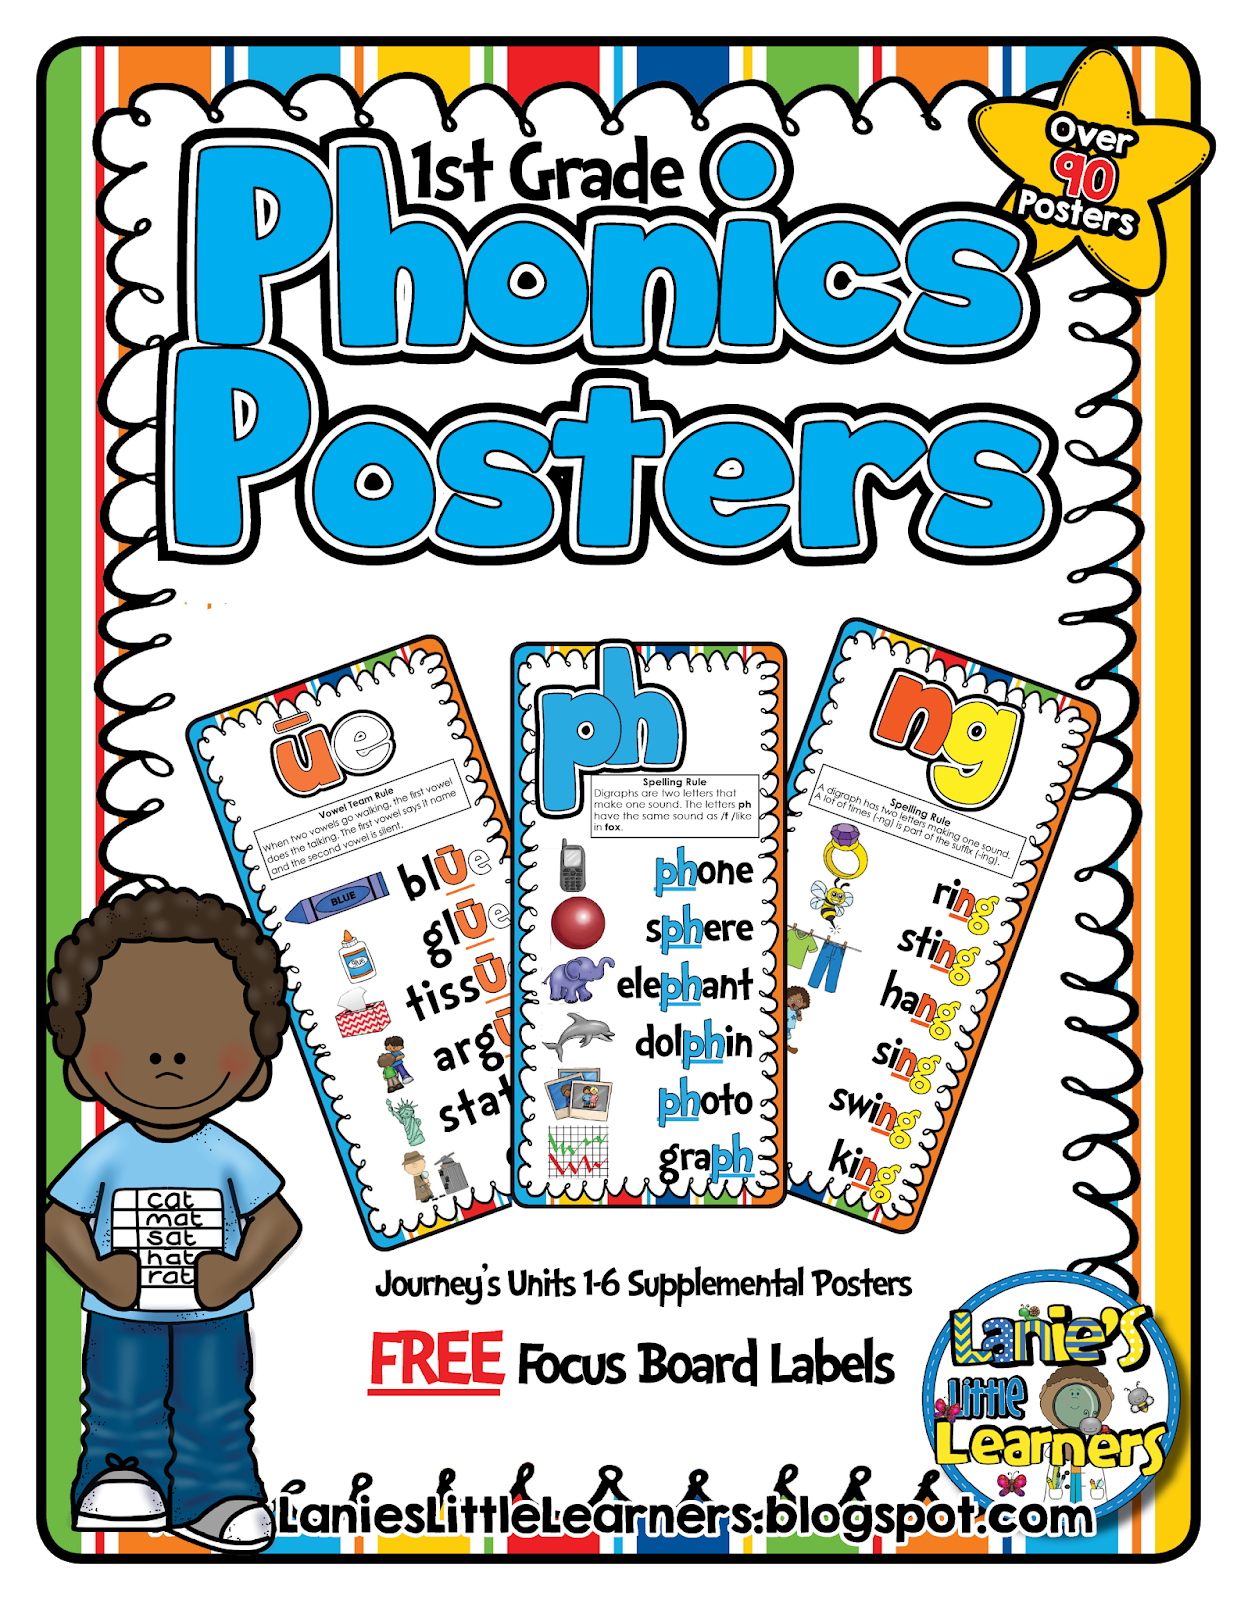 Lanie's Little Learners: 1st Grade Phonics Posters {Journey's 1st